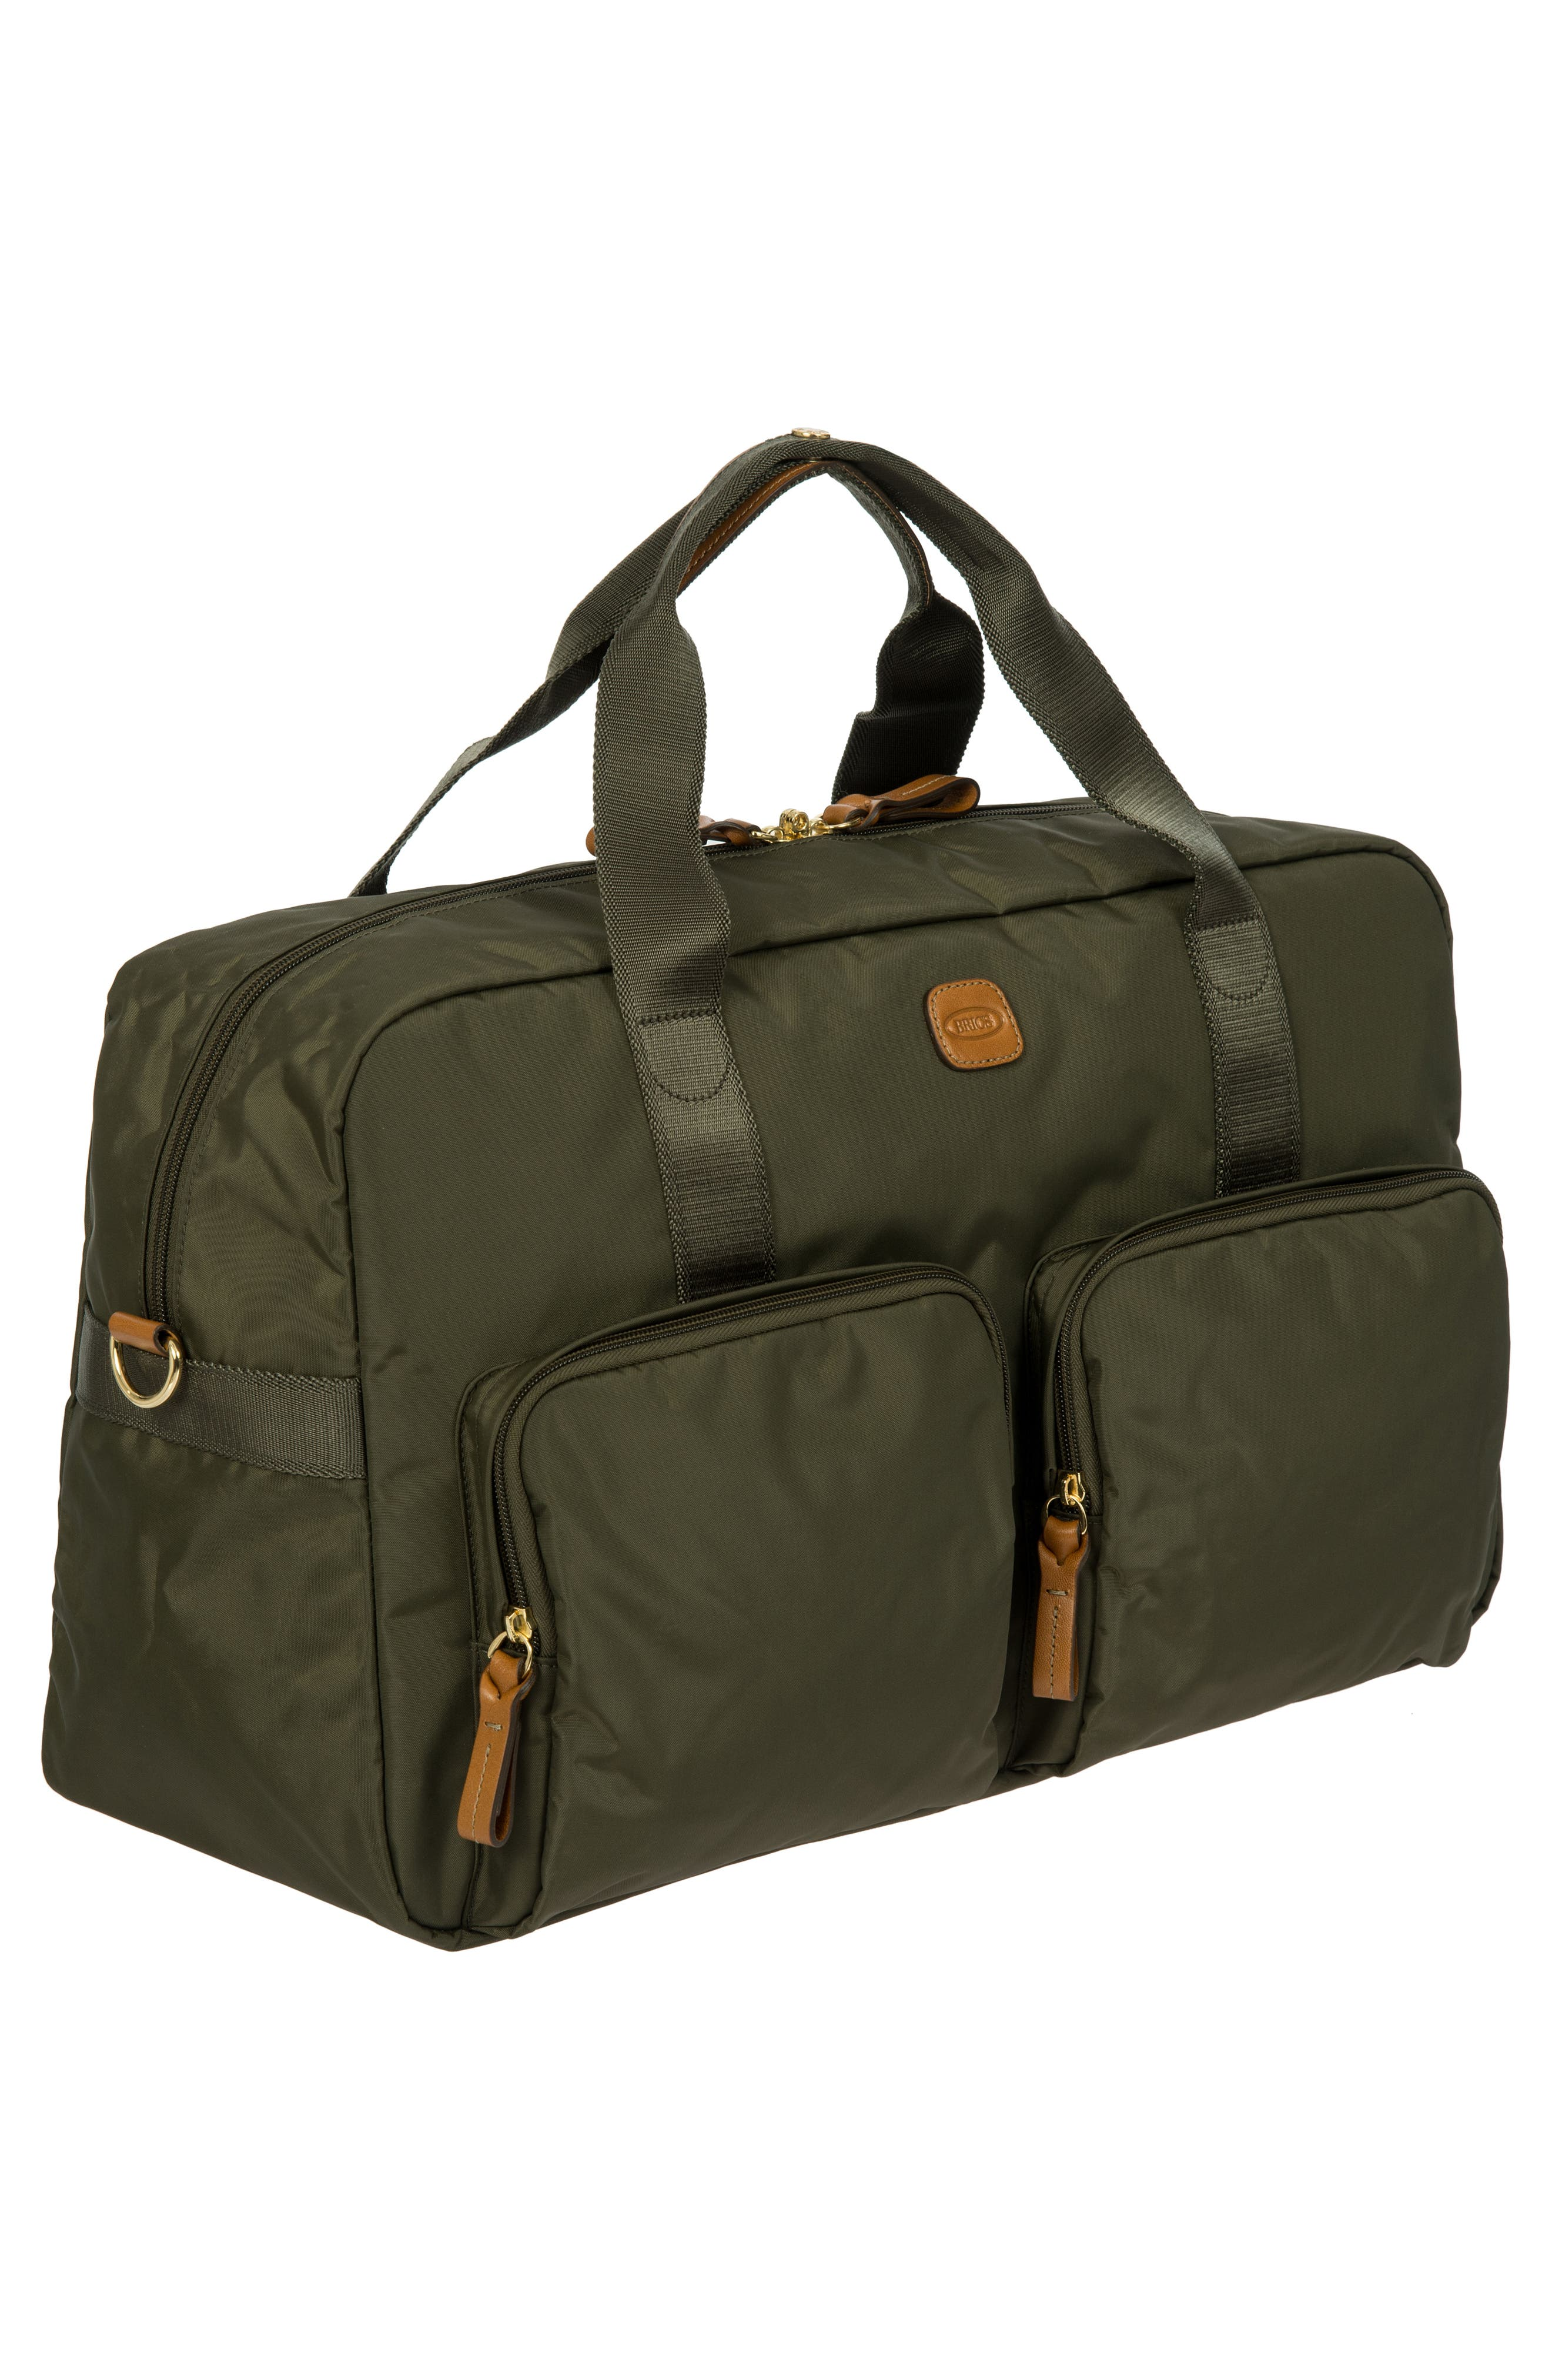 X-Bag Boarding 18-Inch Duffel Bag,                             Alternate thumbnail 6, color,                             OLIVE